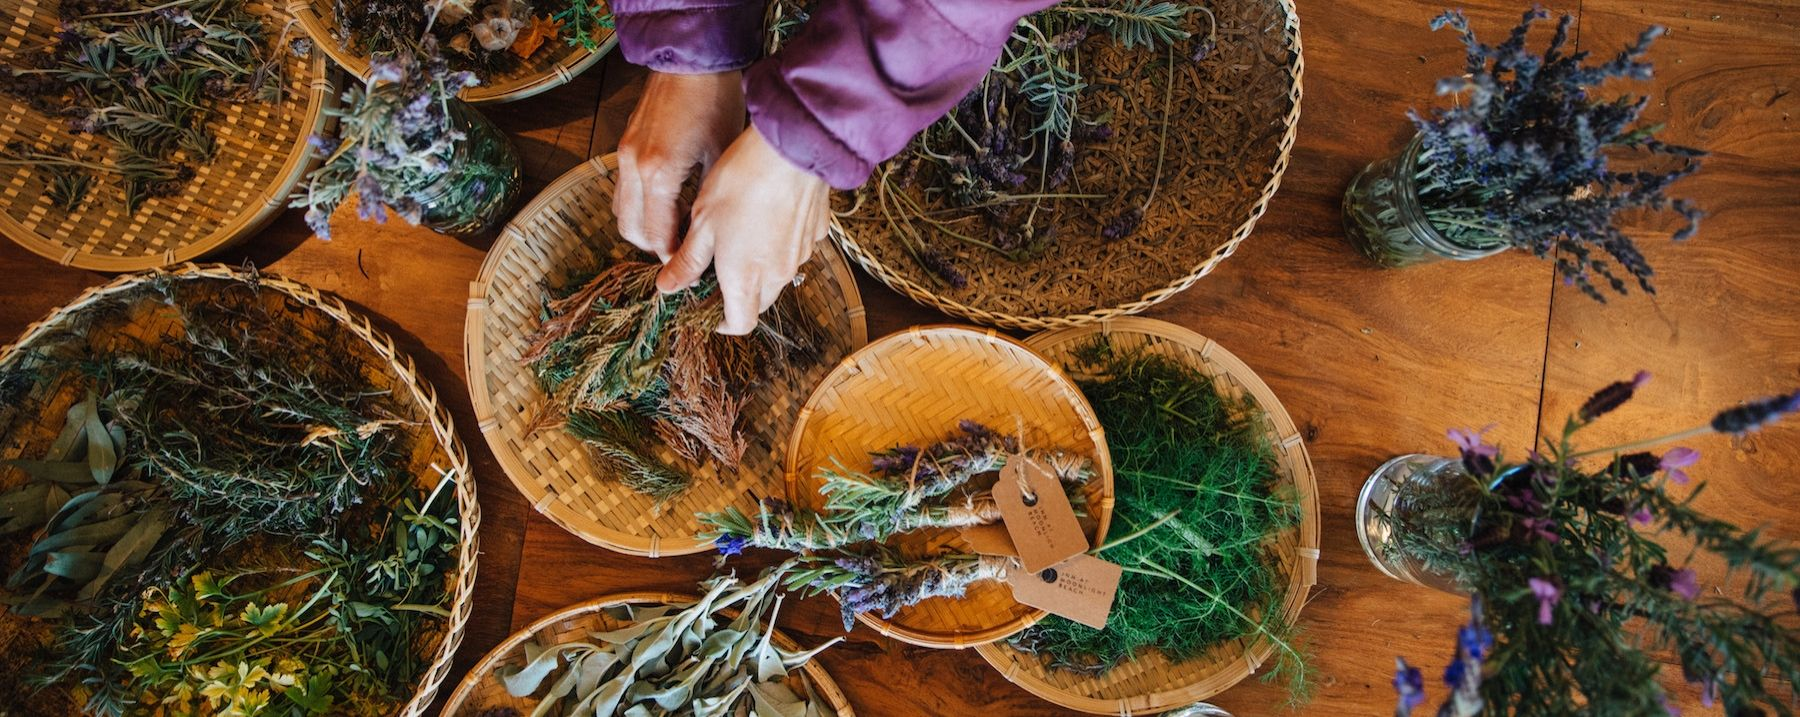 a person handling herbs